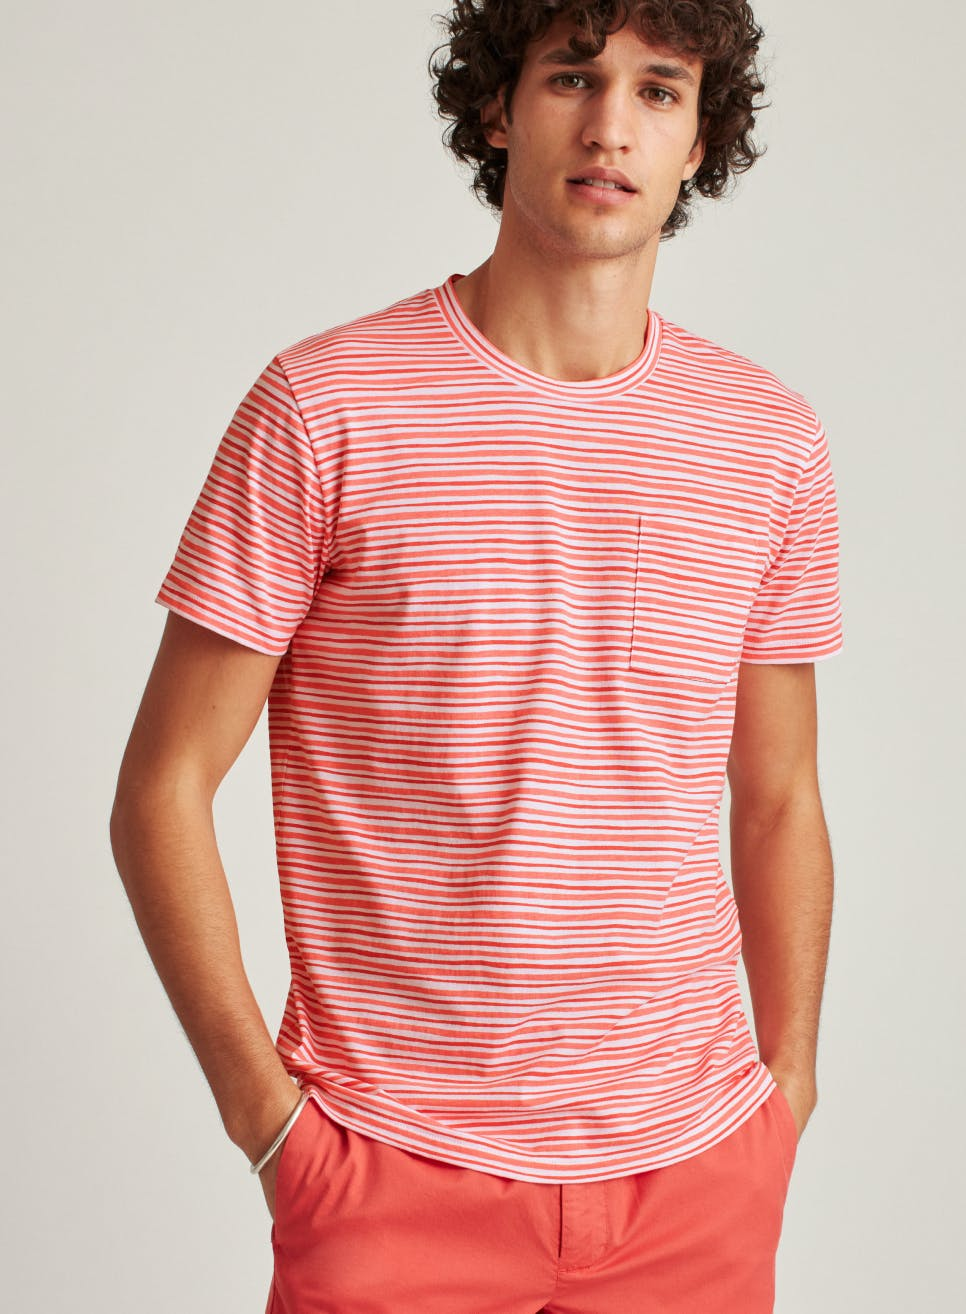 image of model in red stripe tee